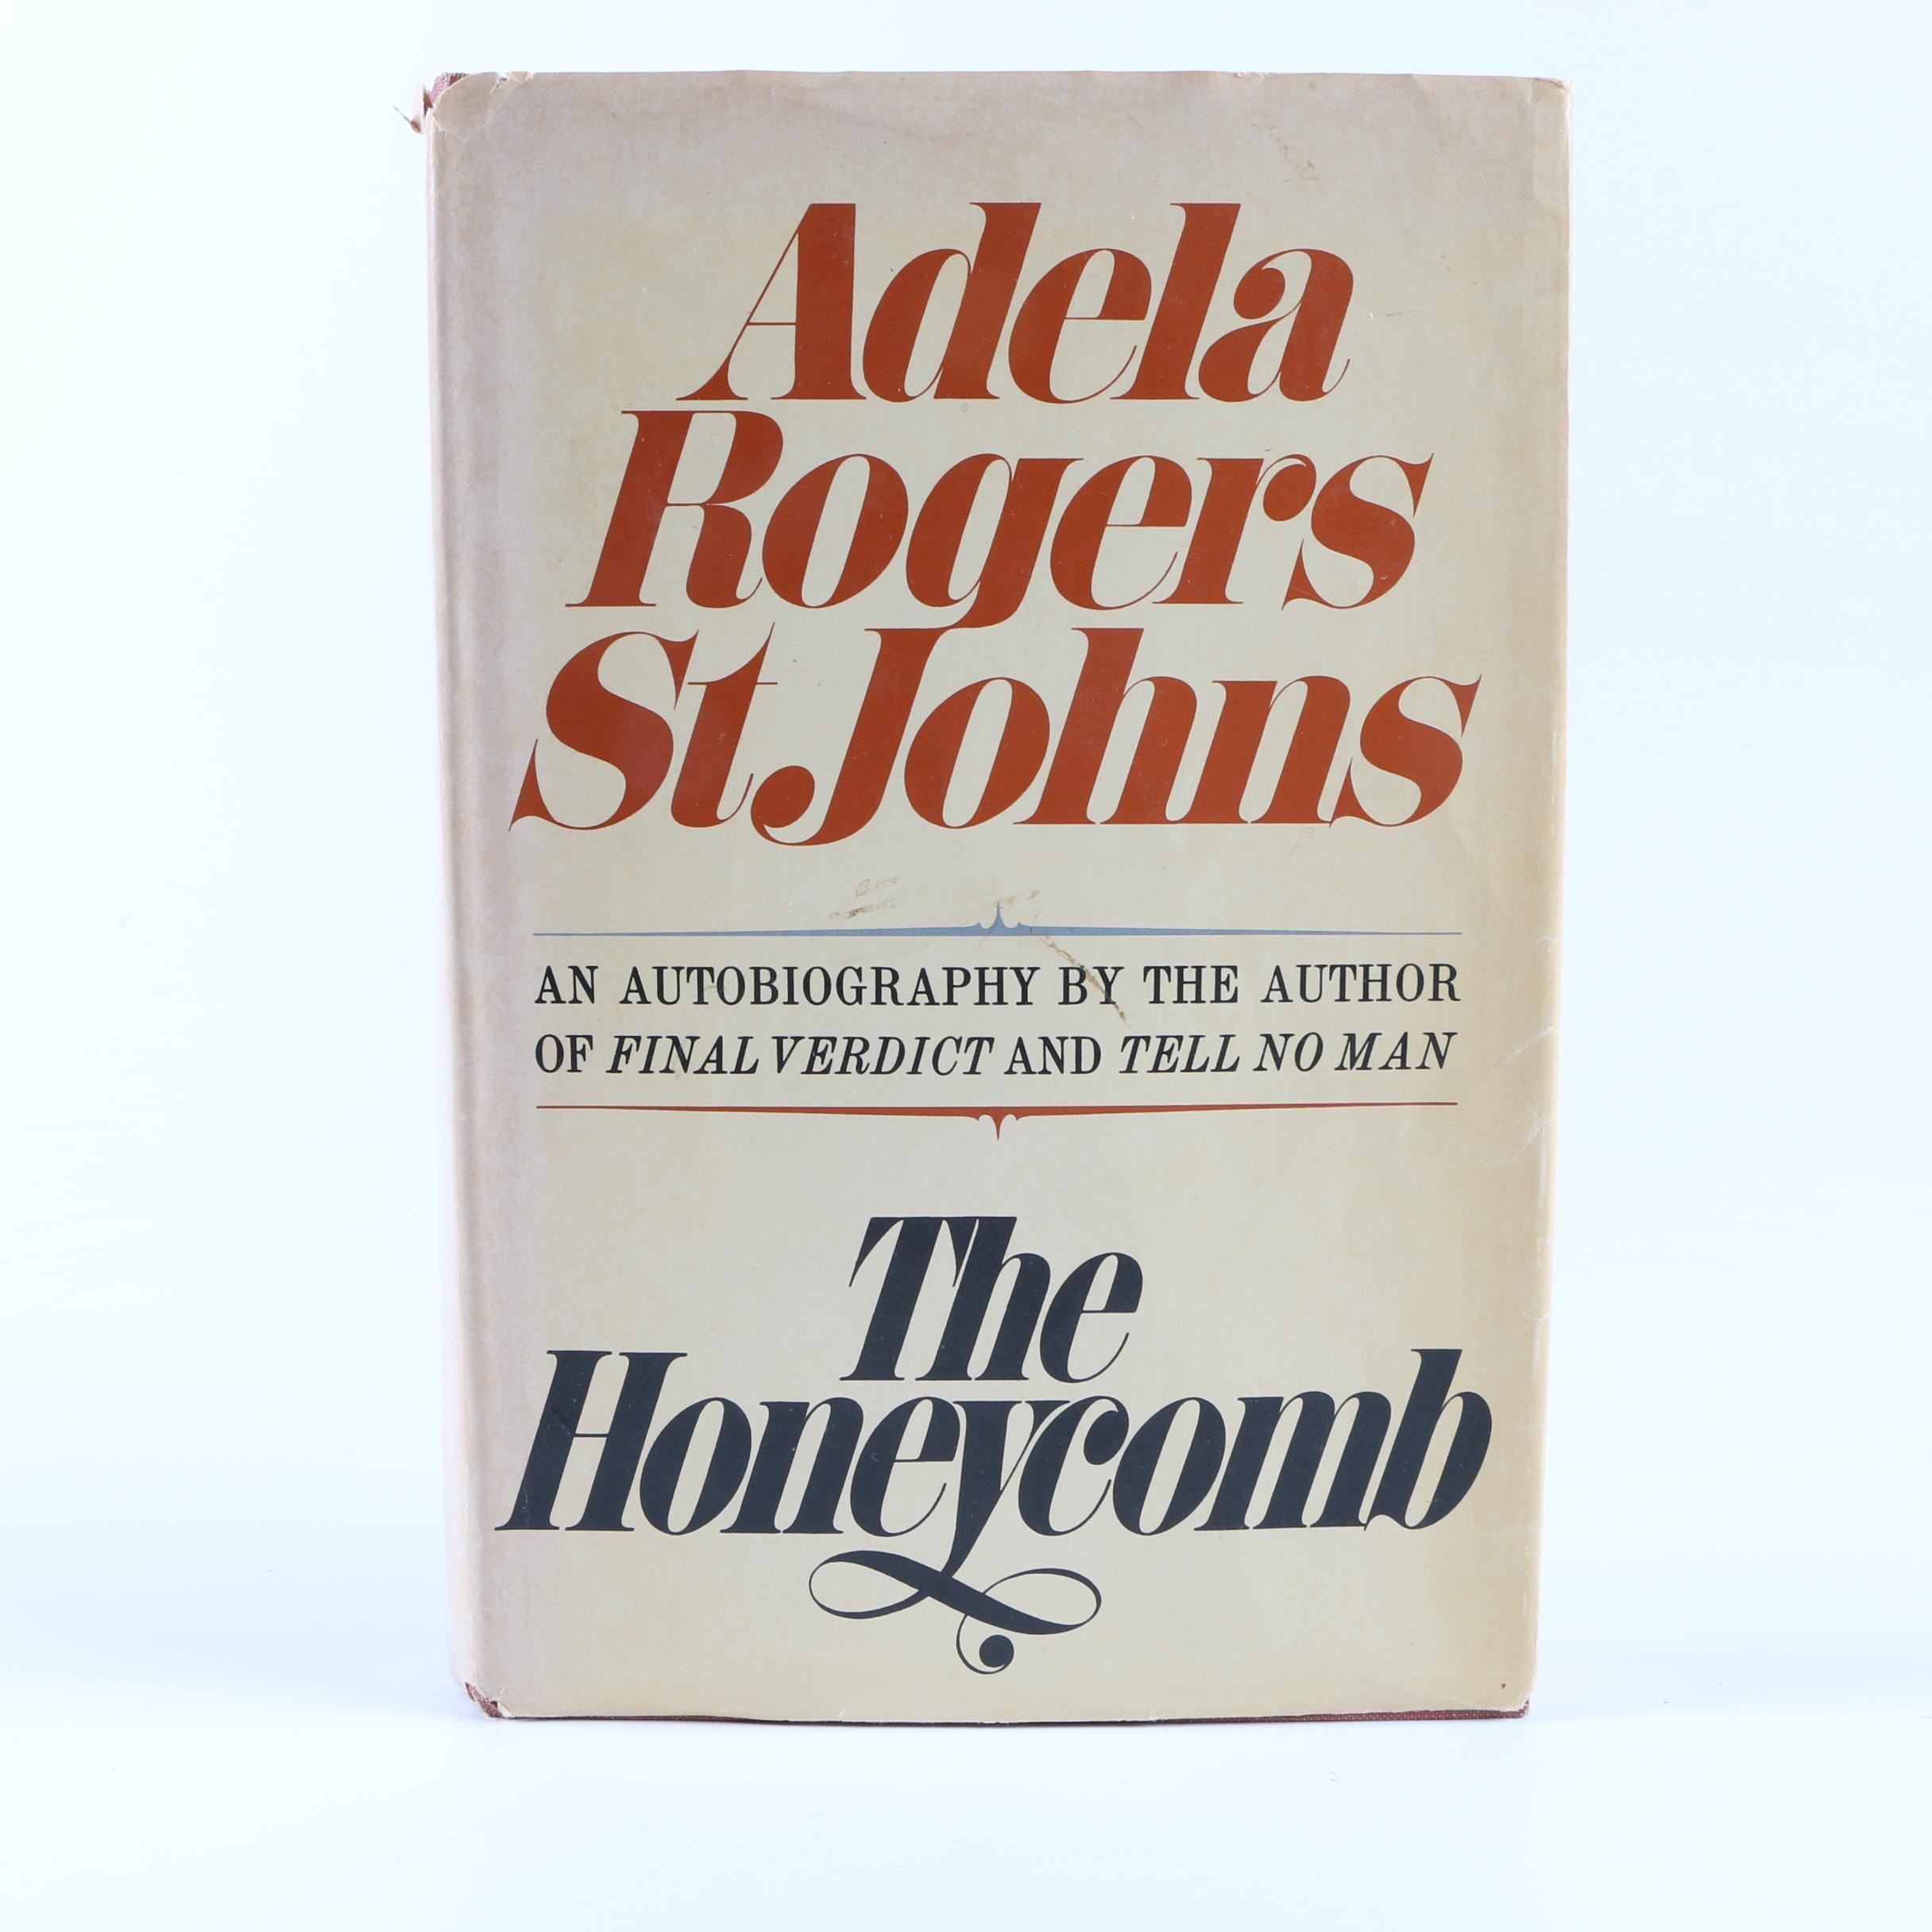 "1969 ""The Honeycomb"" by Adela Rogers St. Johns"